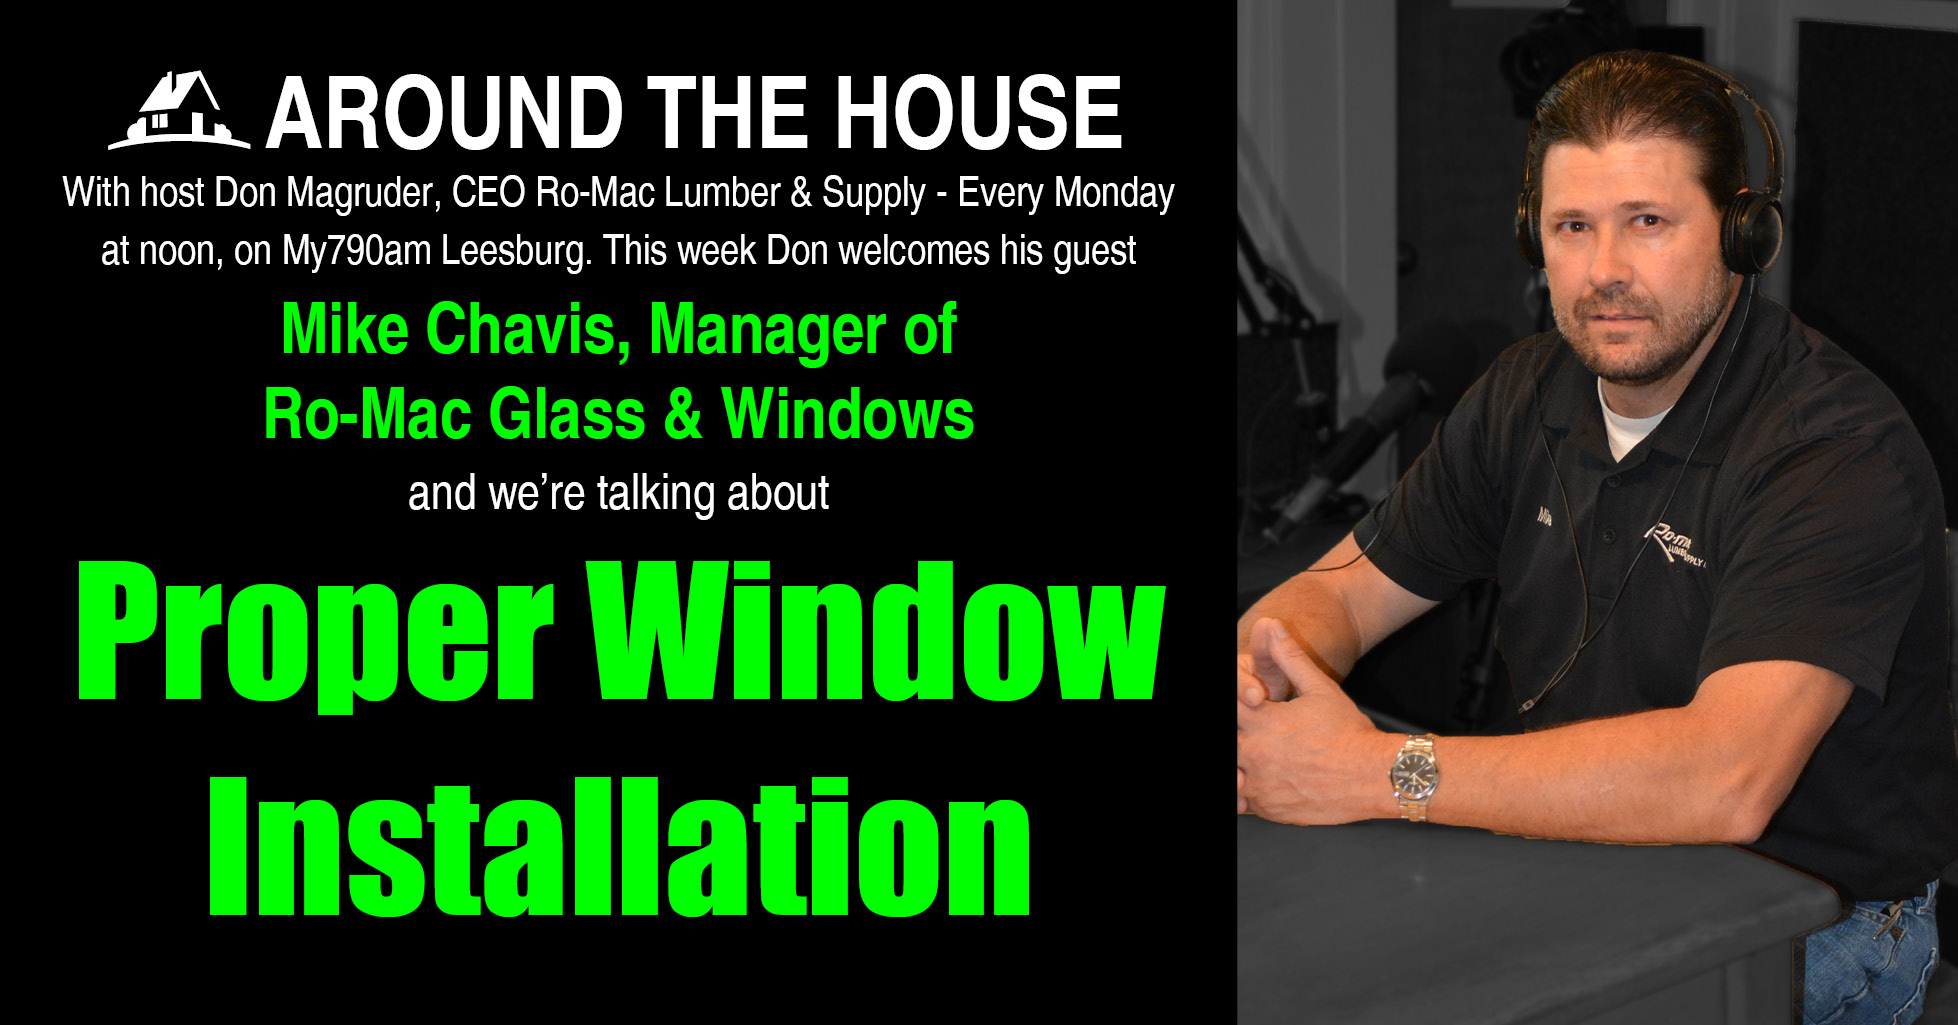 17-10-23 MikeChavis-WindowInstallation